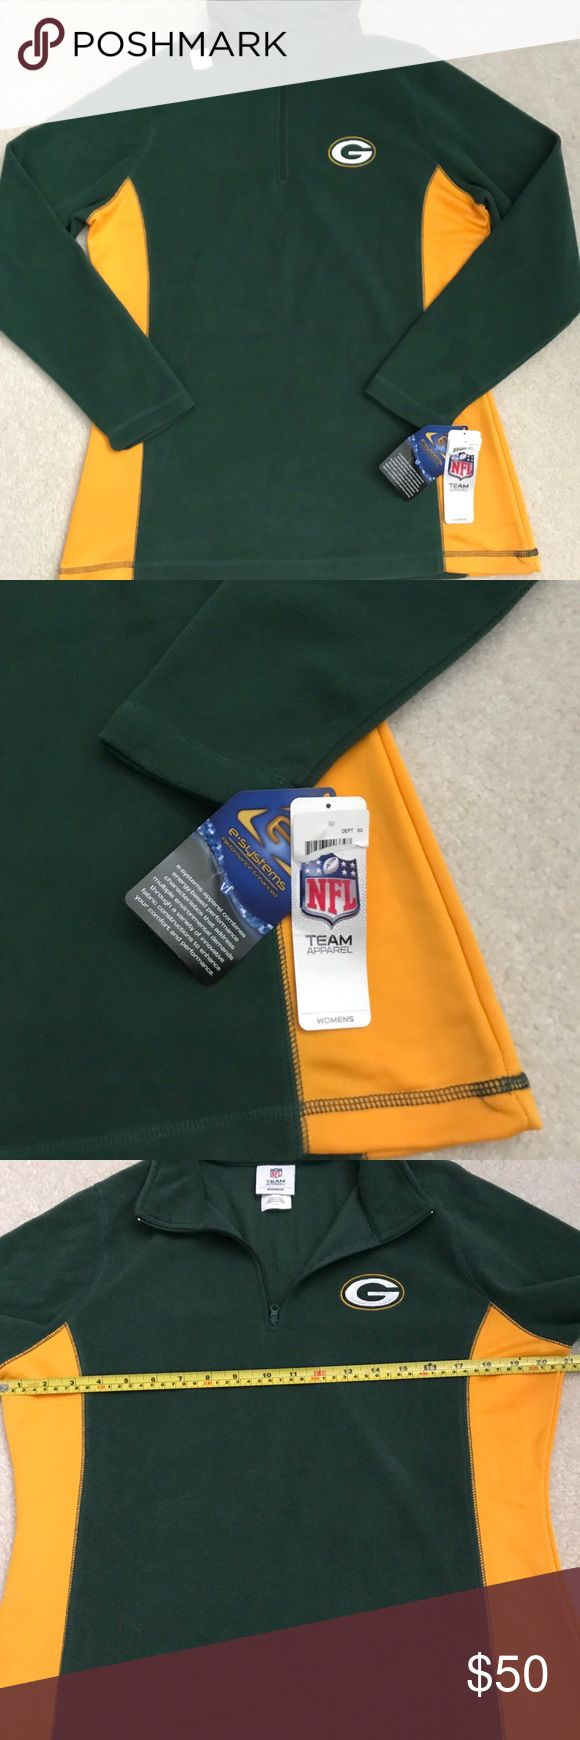 """Green Bay Packers Fleece-RUNS SMALL Green Bay Packers fleece jacket which has never been worn and still has all of the tags attached as well as the NFL hologram sticker. Features a half zipper closure. The only part of the jacket which is not fleece are the two side panels. These are a deep yellow and have a stretch to them which makes layering and movement easier. The Packer logo is embroidered on the front. Authentic NFL apparel. Sleeve length 24"""", bust 21"""". Please see photos for the…"""